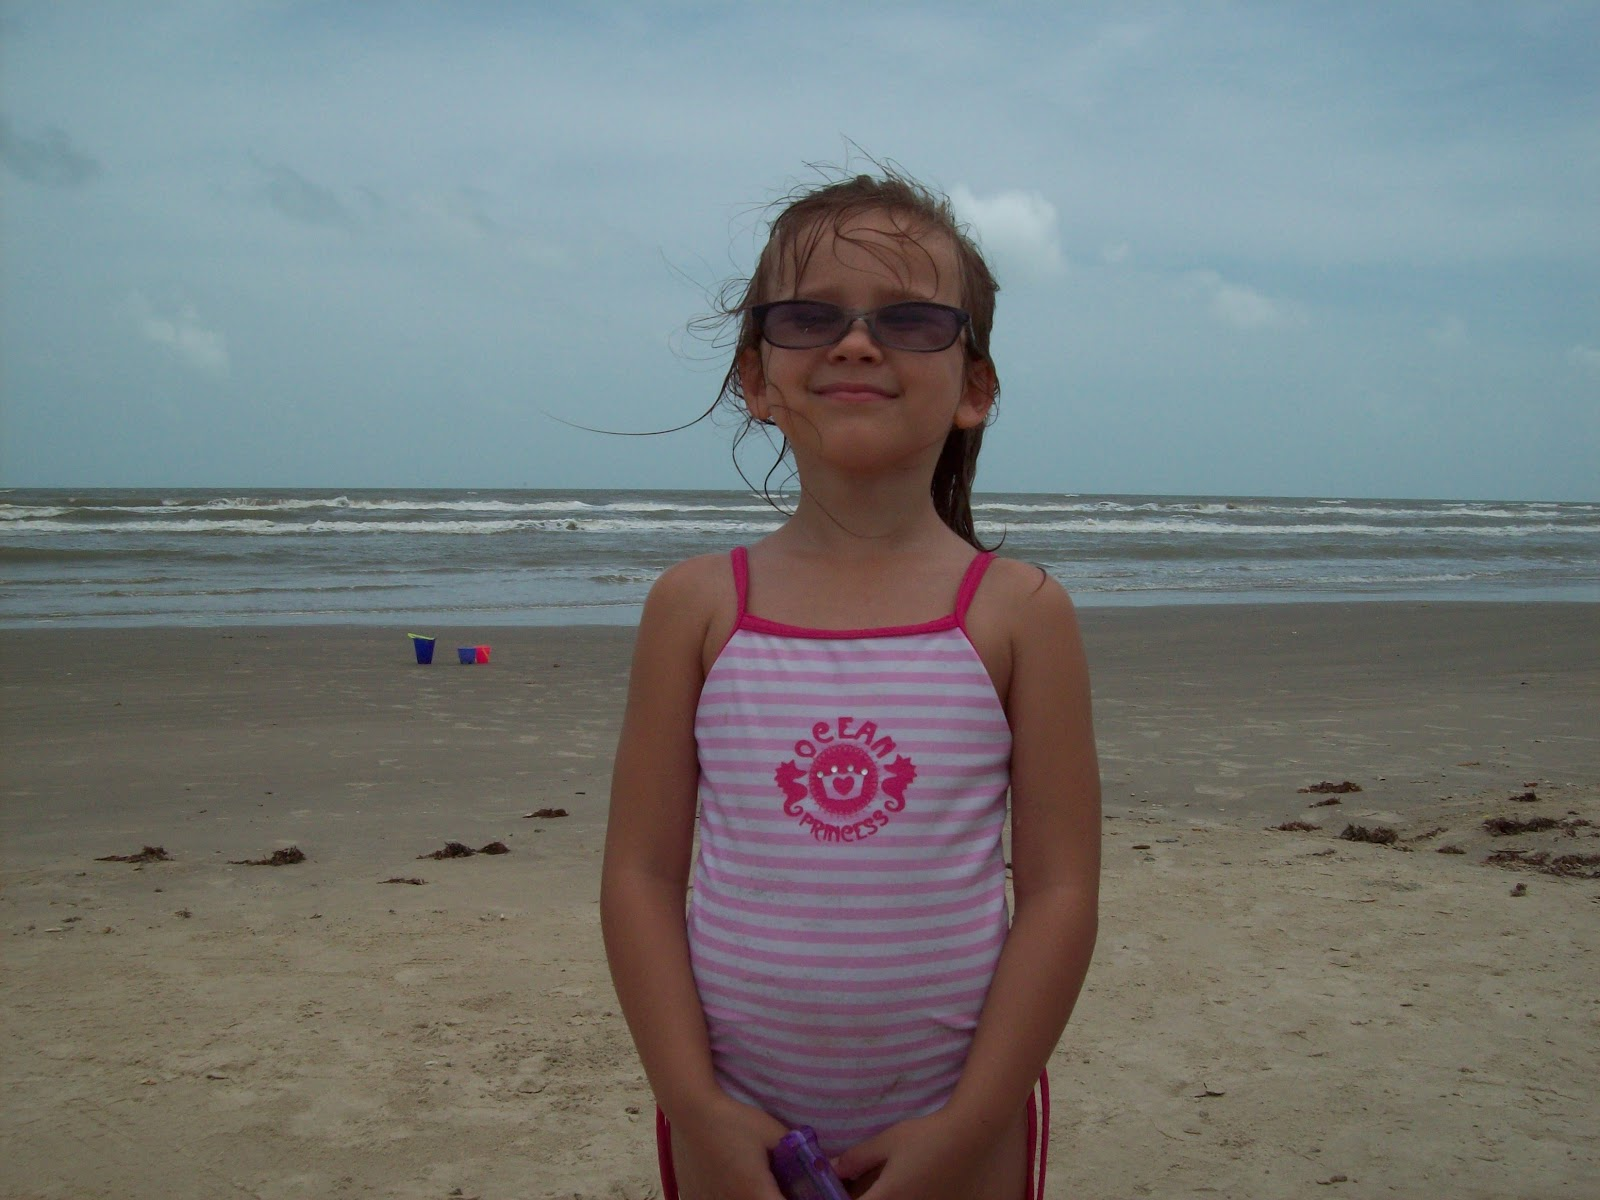 Surfside Tragedy - beach%2B004.JPG